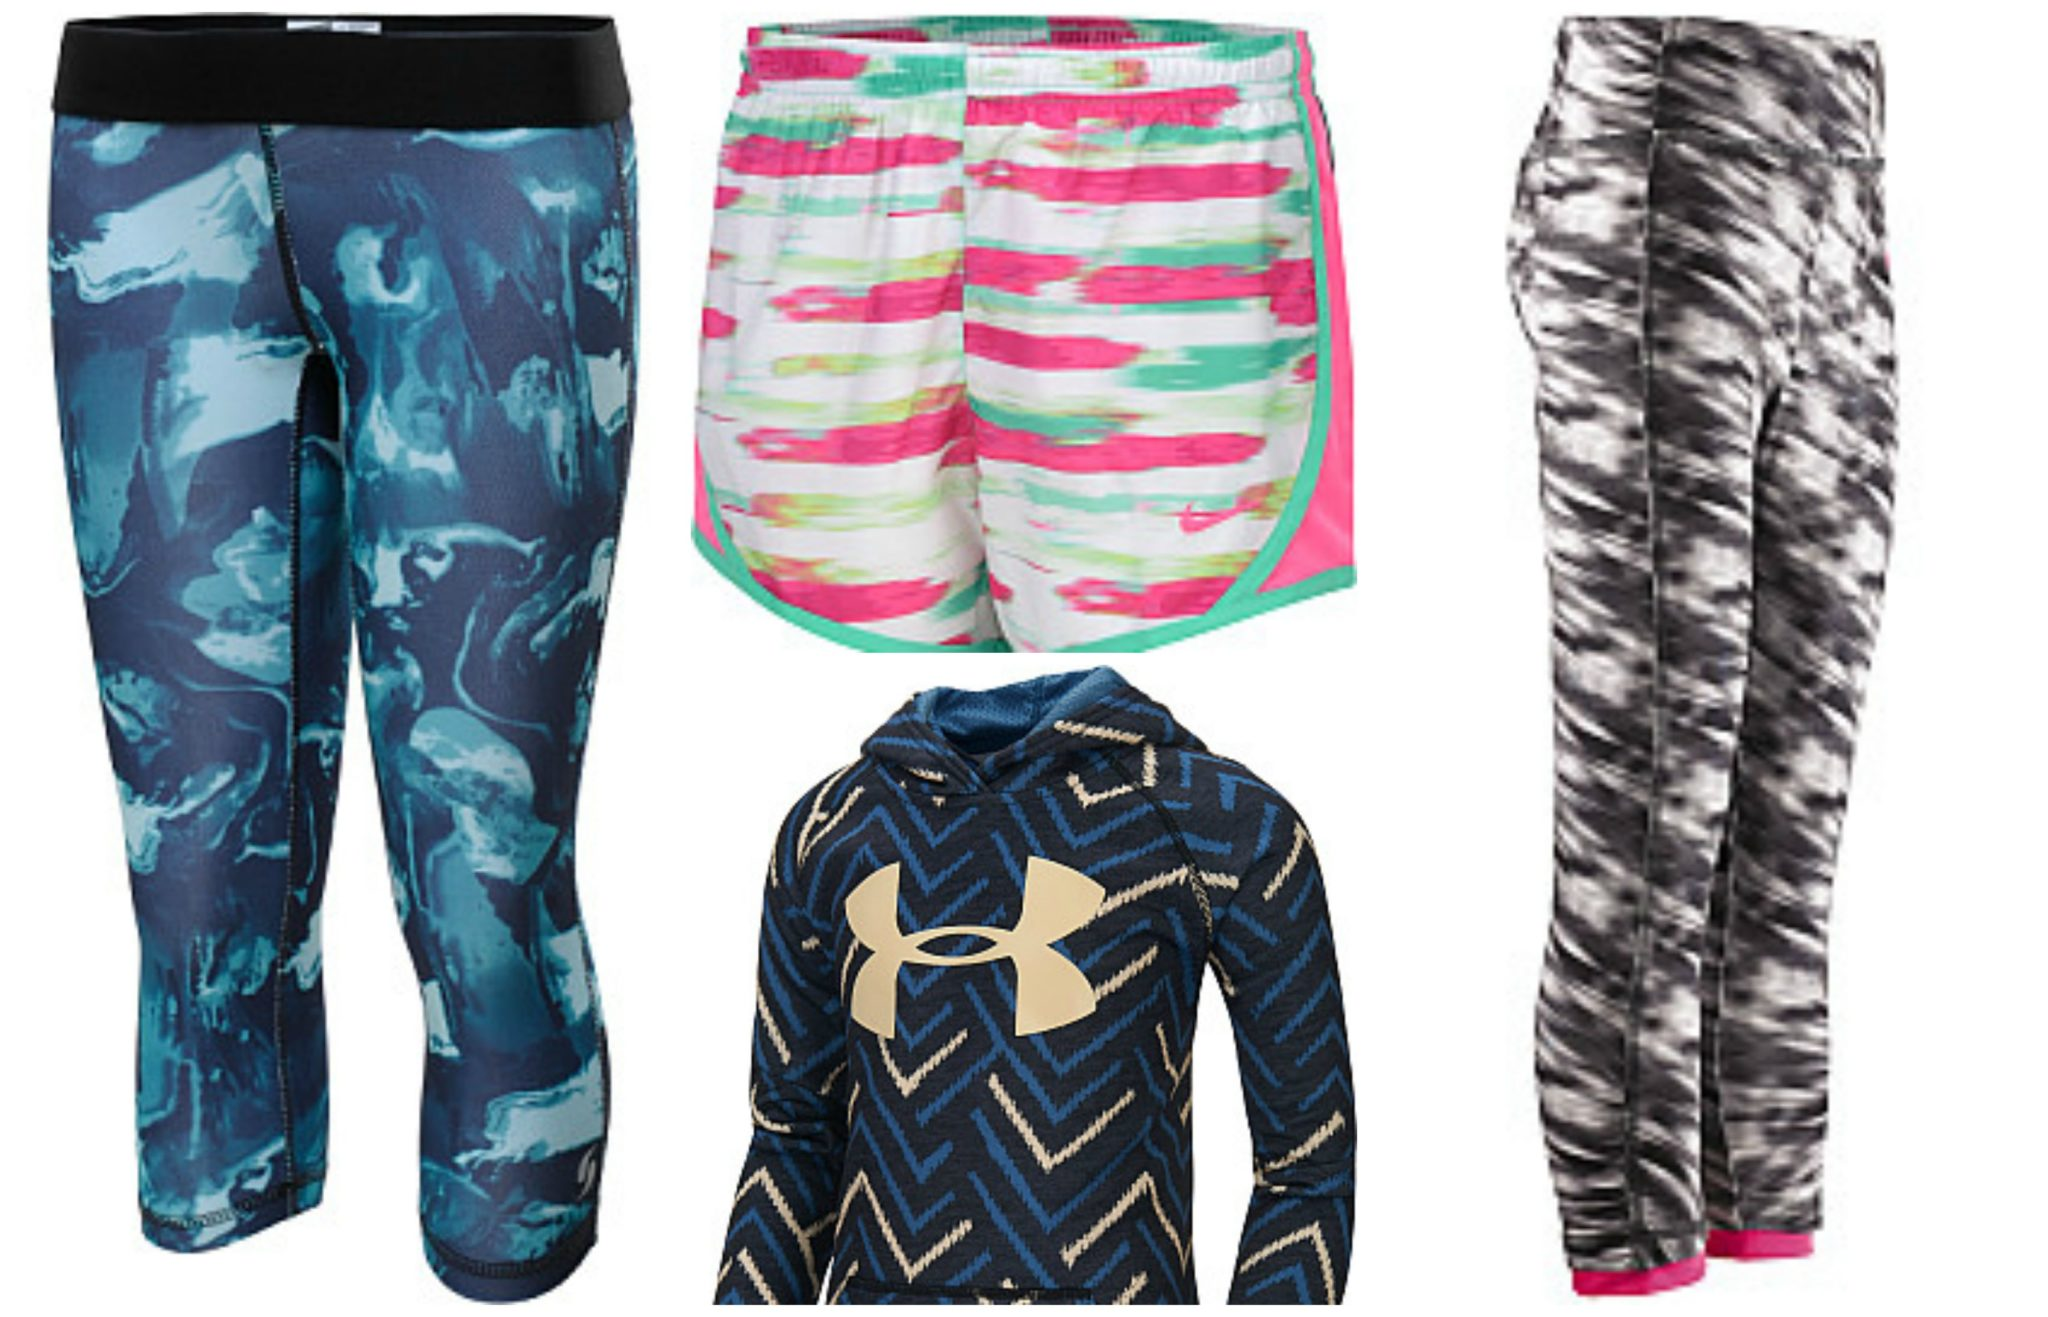 Fall Active Wear for Girls at Sports Authority  | AFancyGirlMust.com